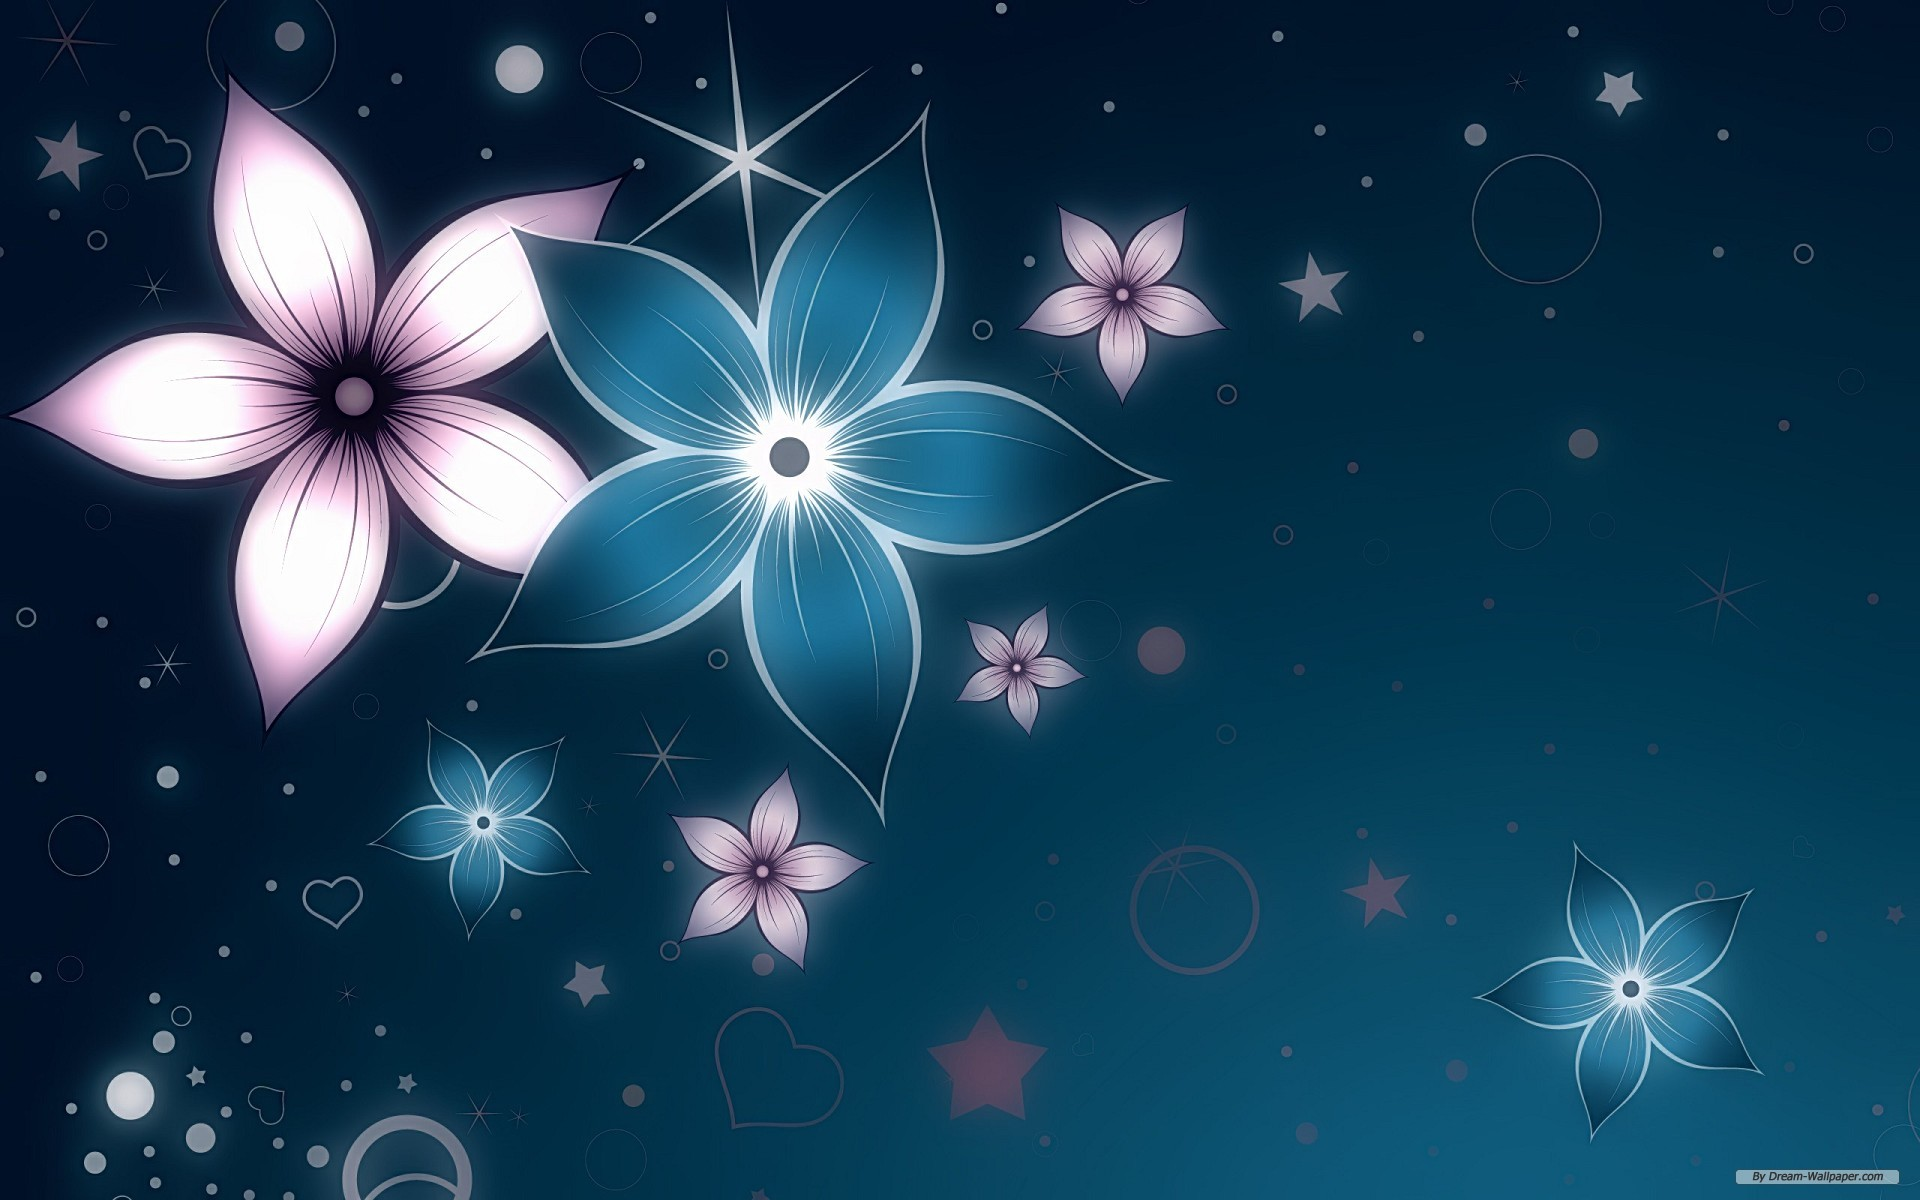 Abstract Flowers HD Wallpaper 1920x1200